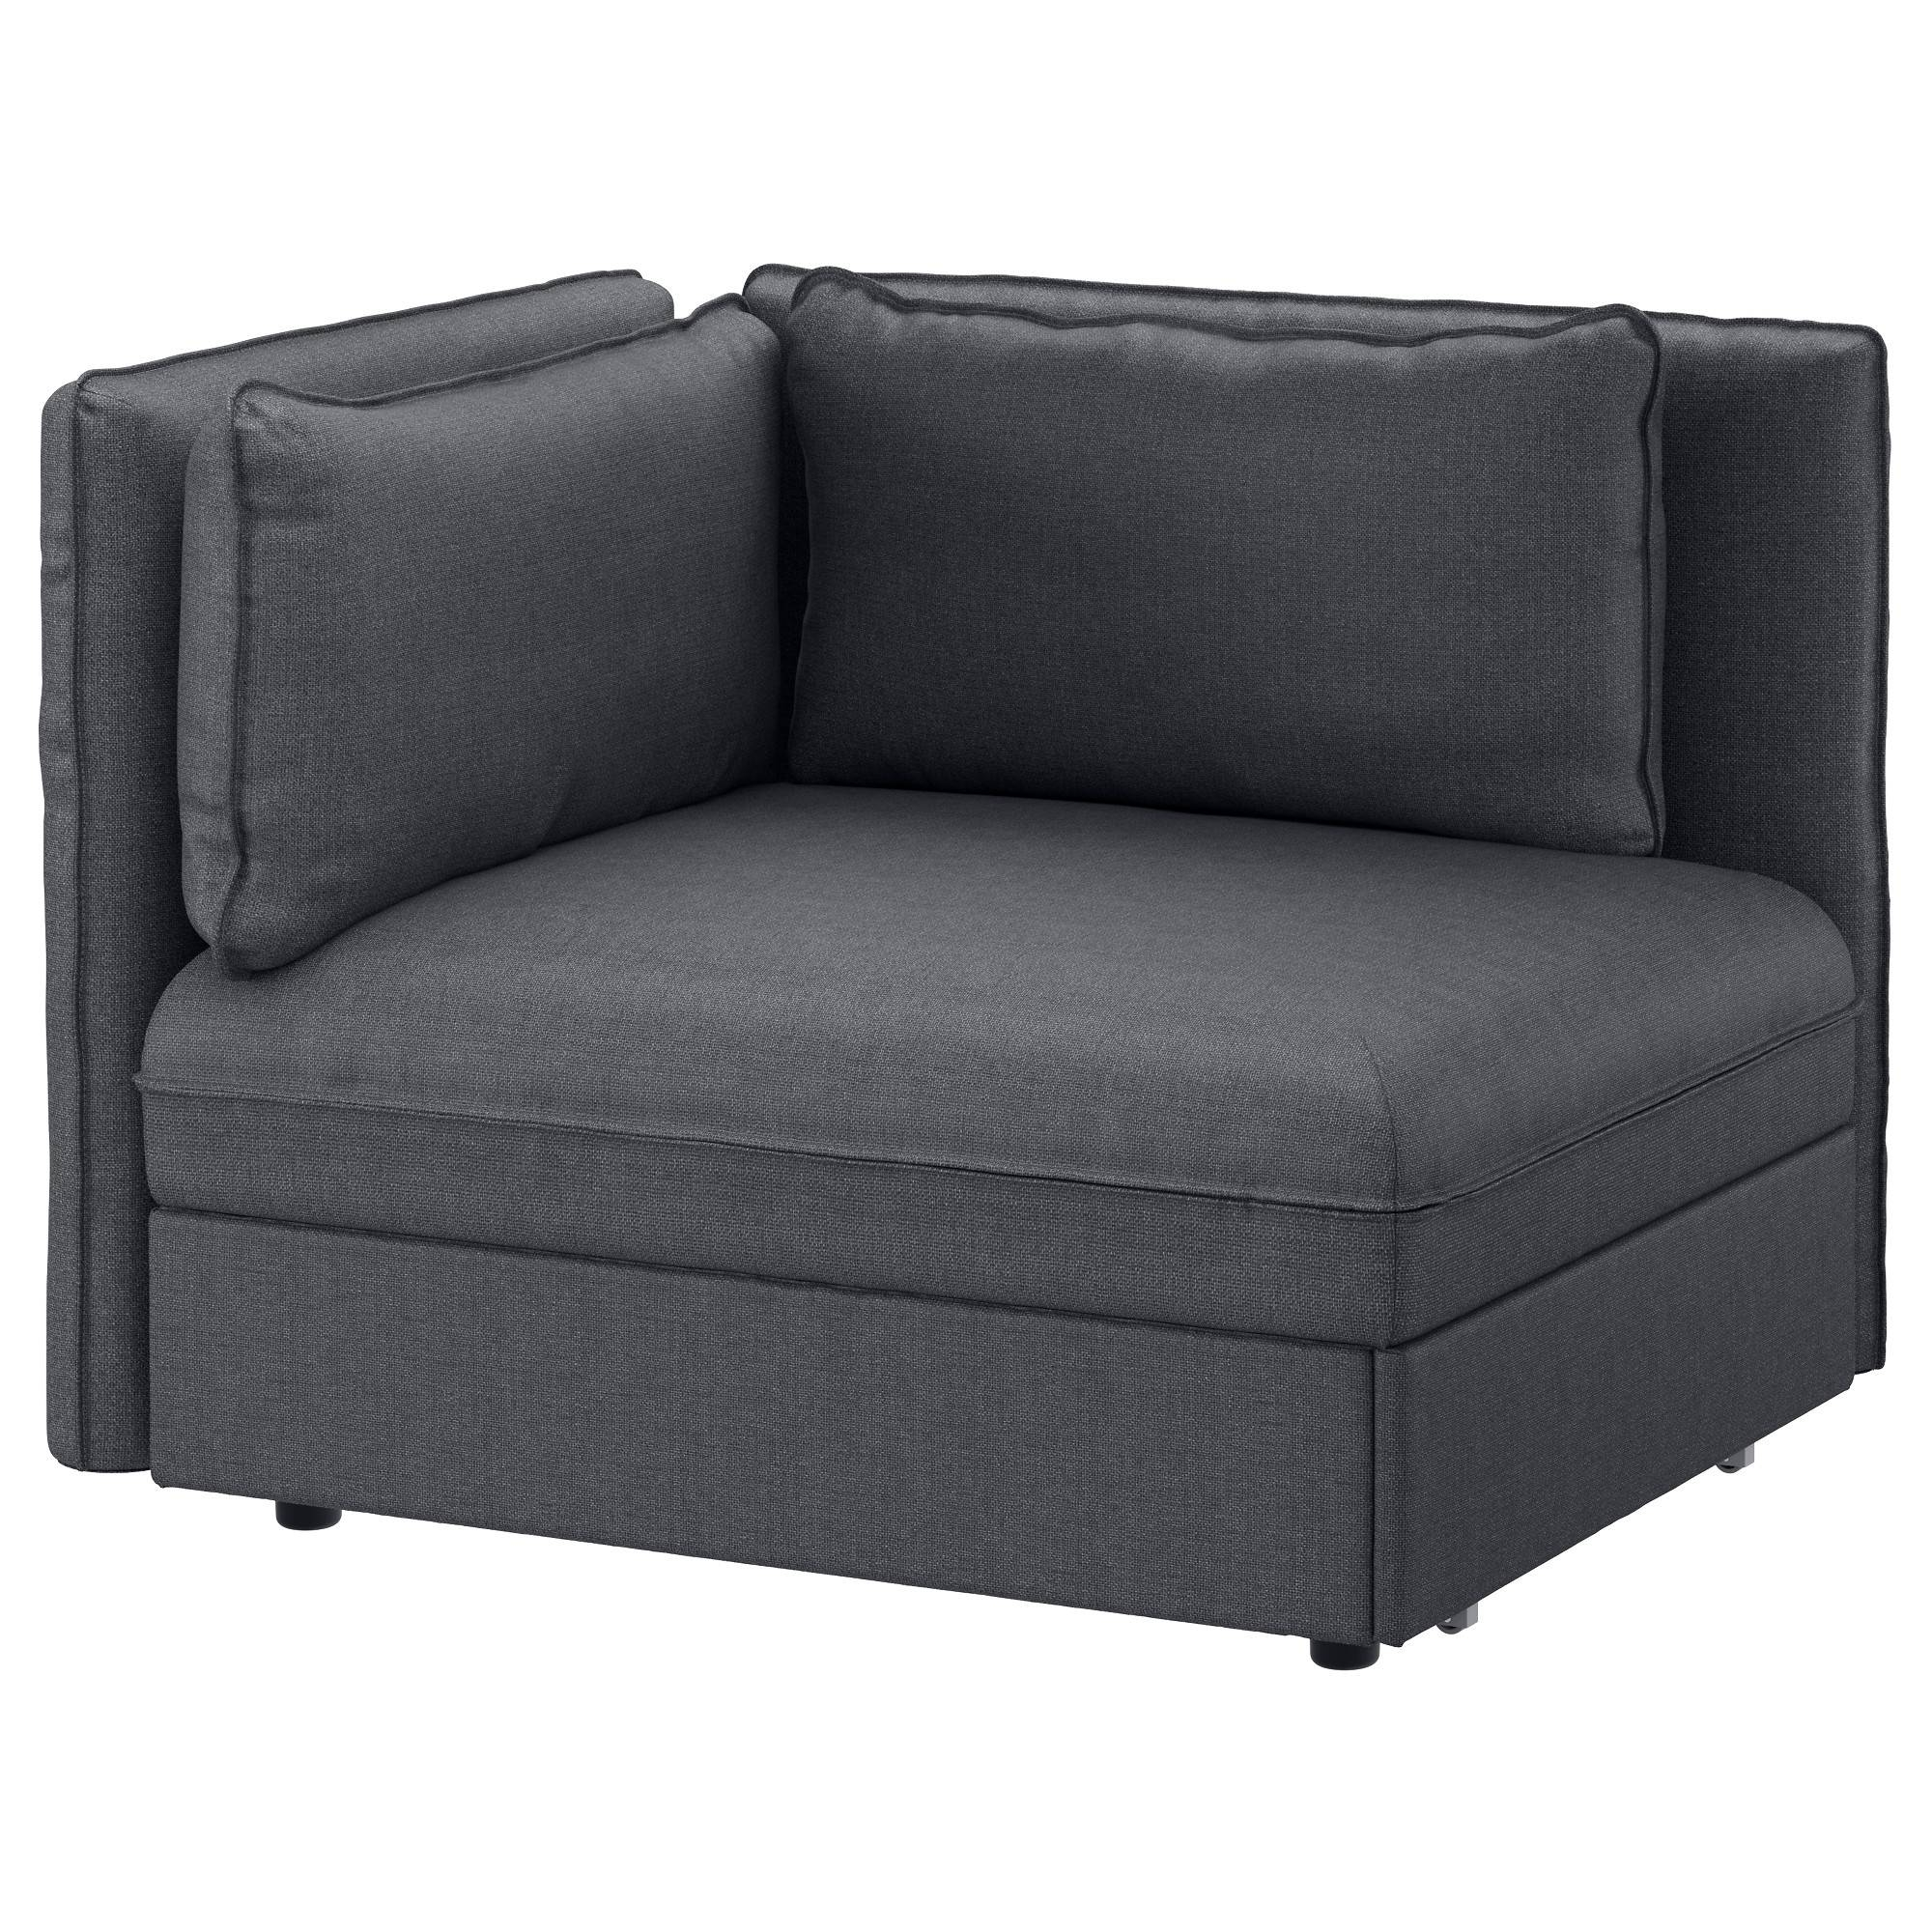 Sofa Beds & Futons – Ikea With Sleeper Sofa Sectional Ikea (View 24 of 25)